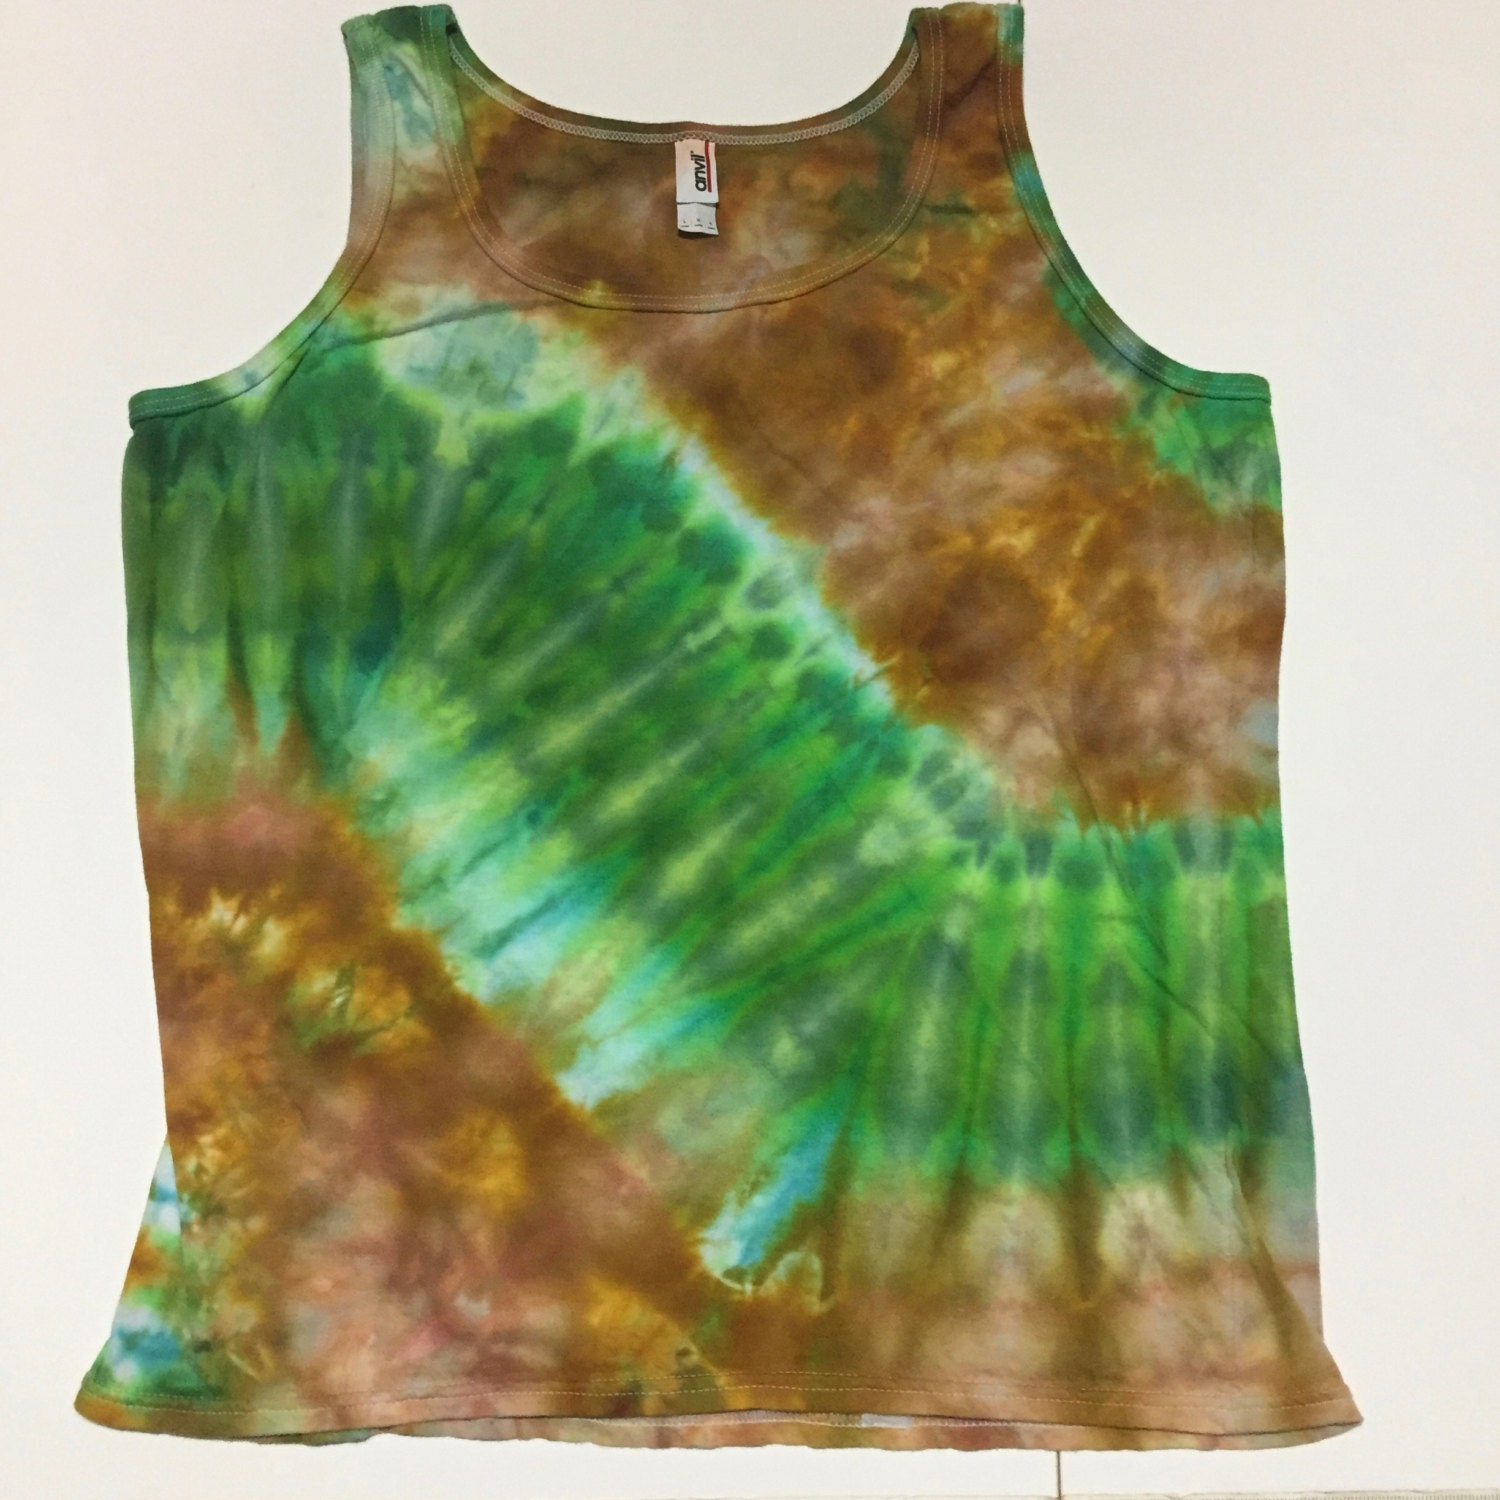 How to Cold Water Dye Clothes